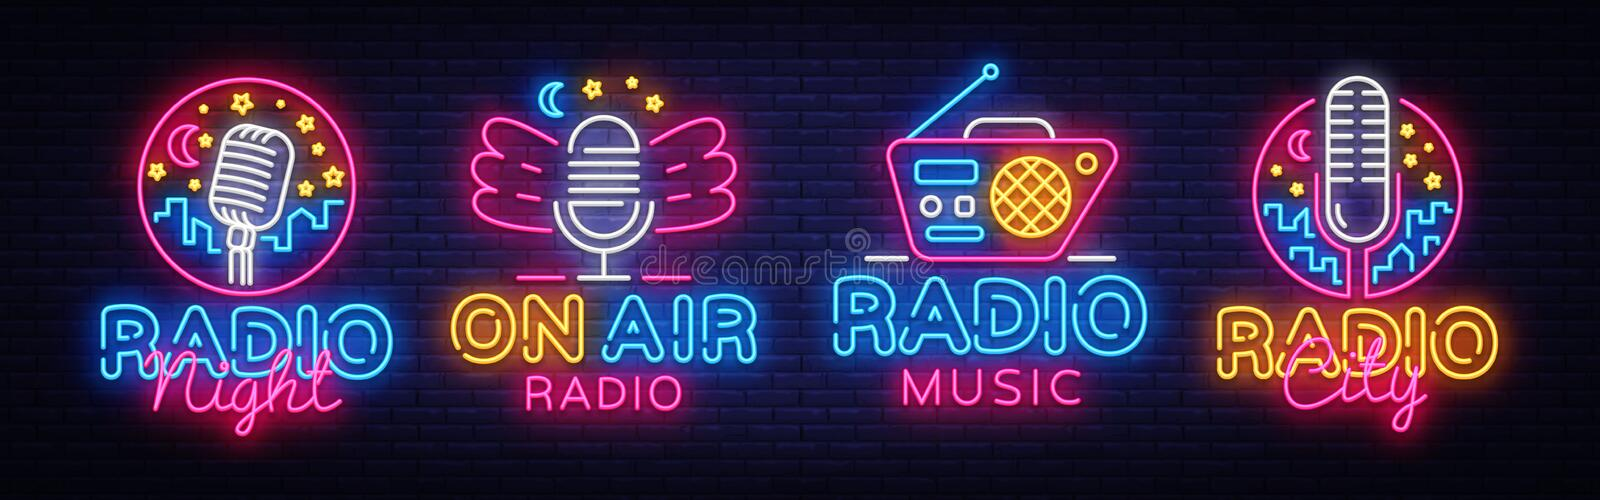 Radio Neon Sign collection Vector. Radio Night neon logos, design template, modern trend design, Radio neon signboard. Night bright advertising, light banner royalty free illustration